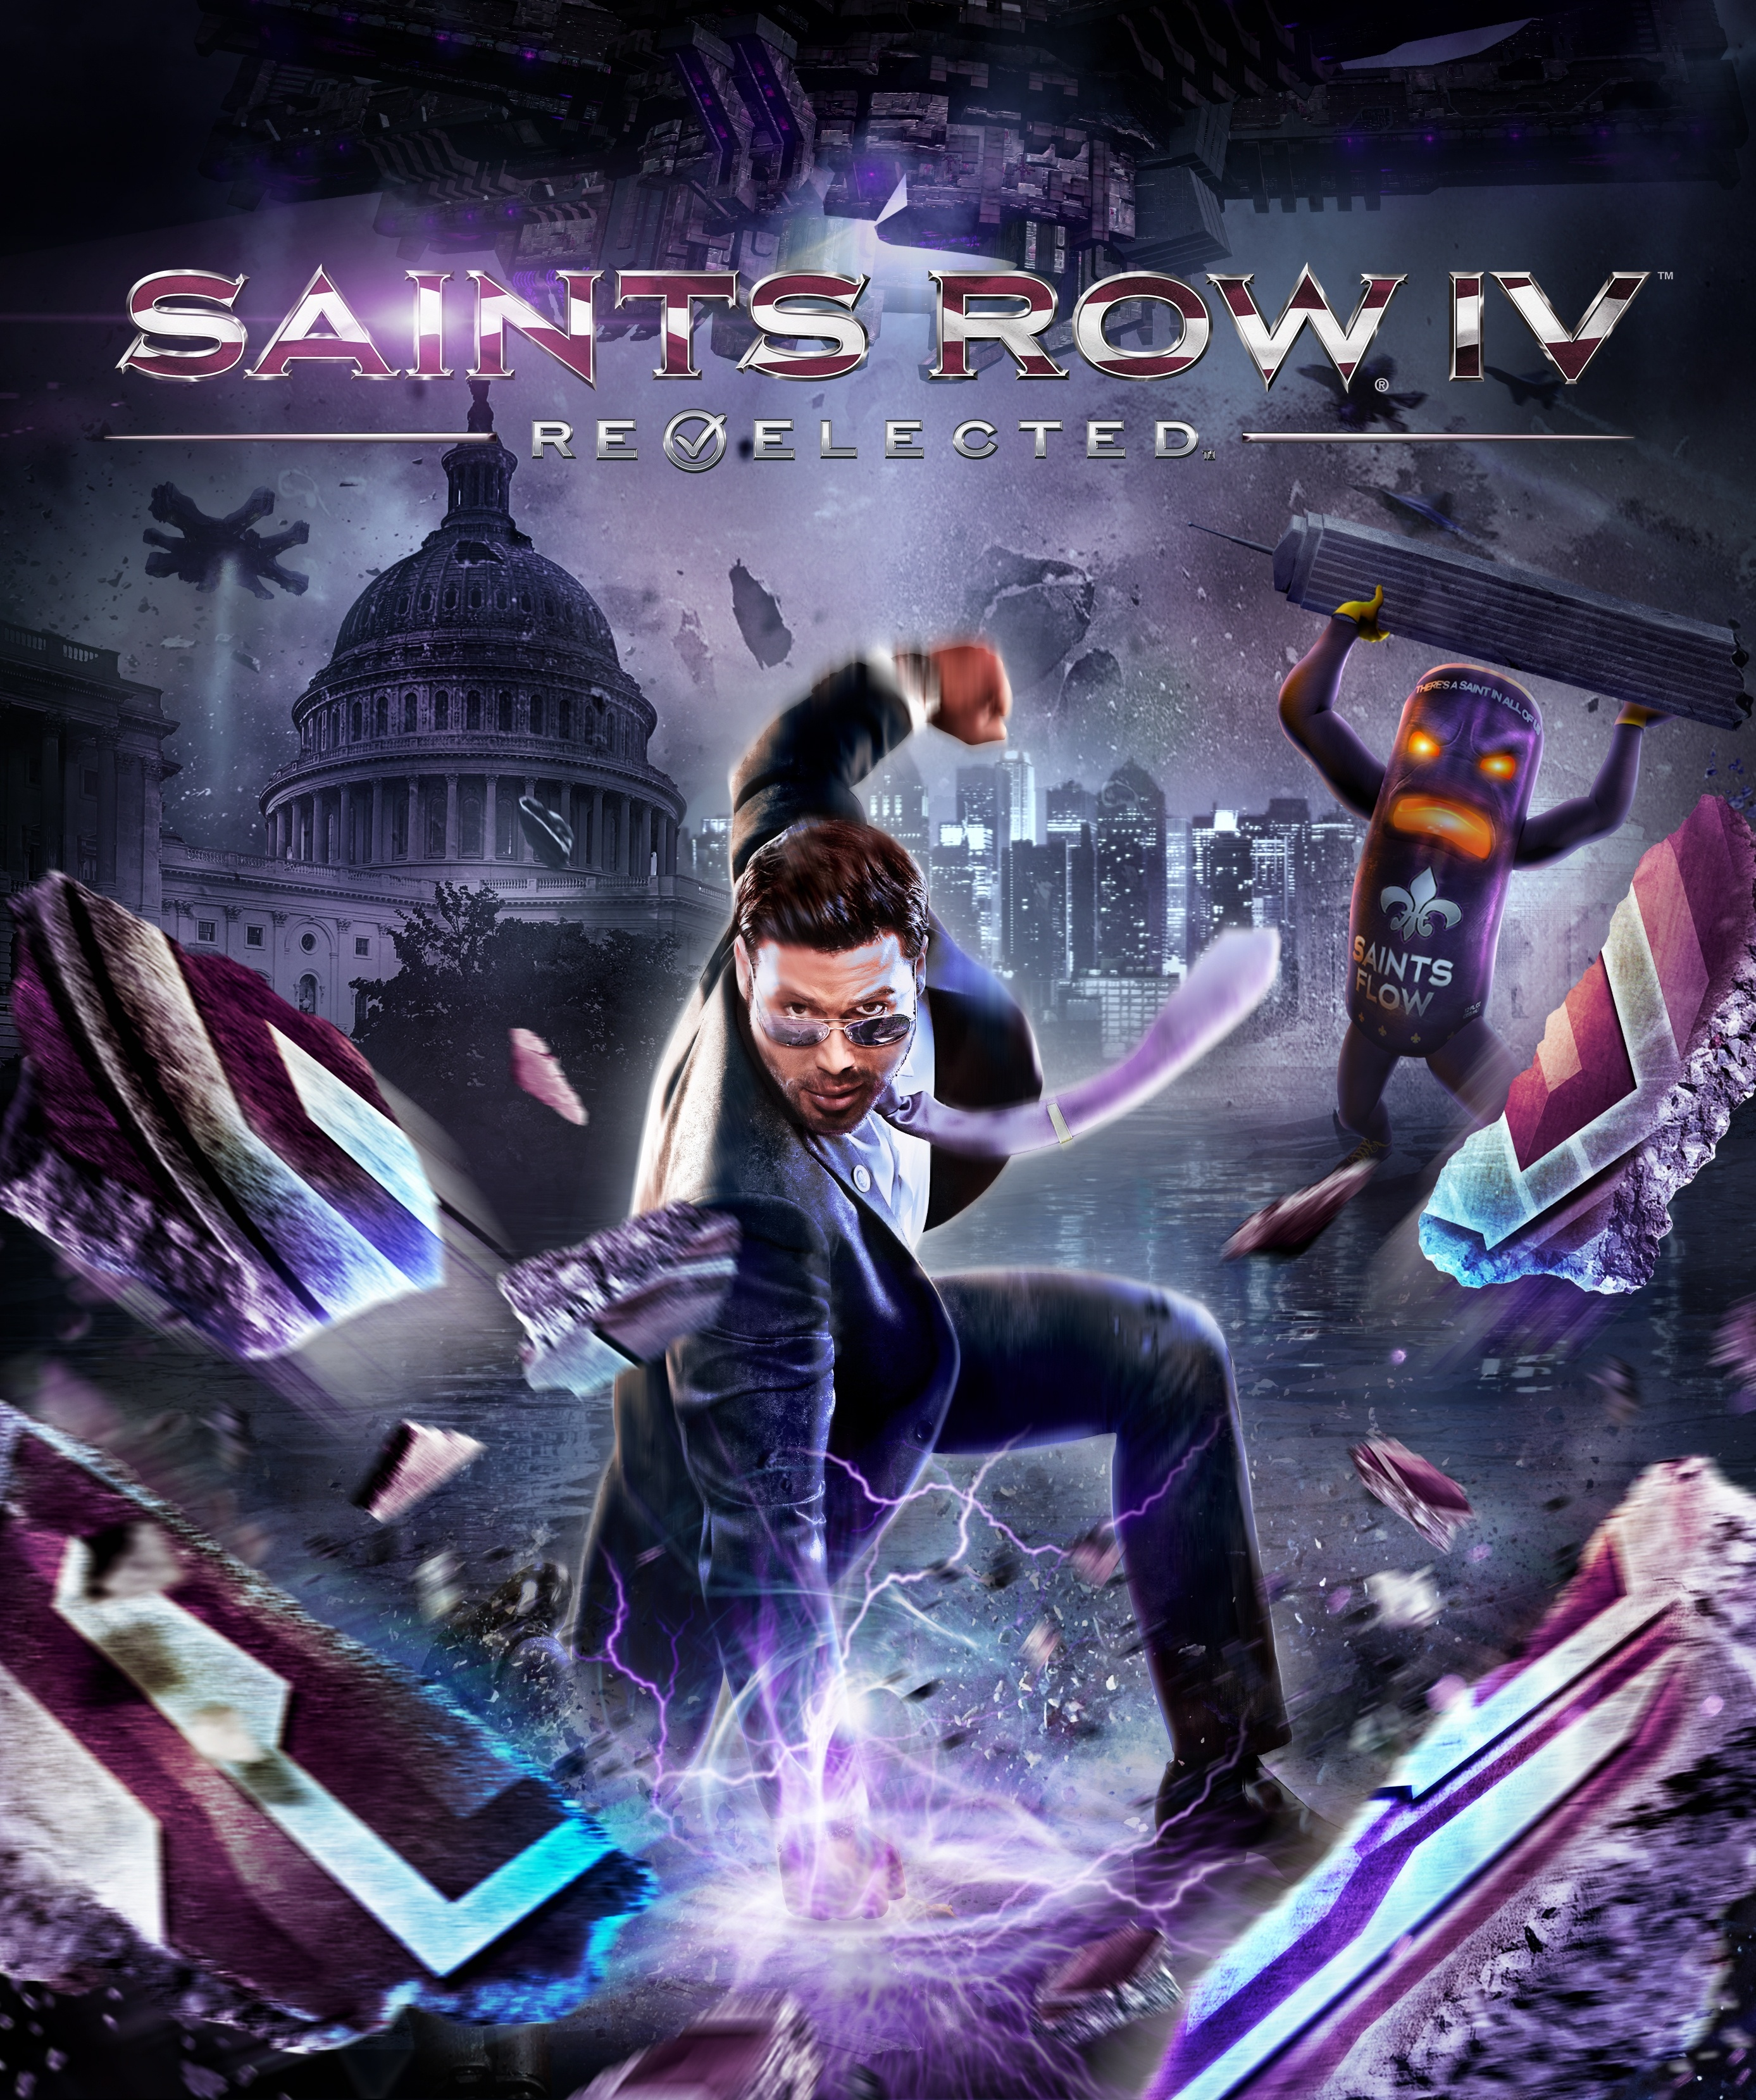 Saints Row IV. Re-Elected [PC, Цифровая версия] (Цифровая версия) europa universalis iv common sense [pc цифровая версия] цифровая версия